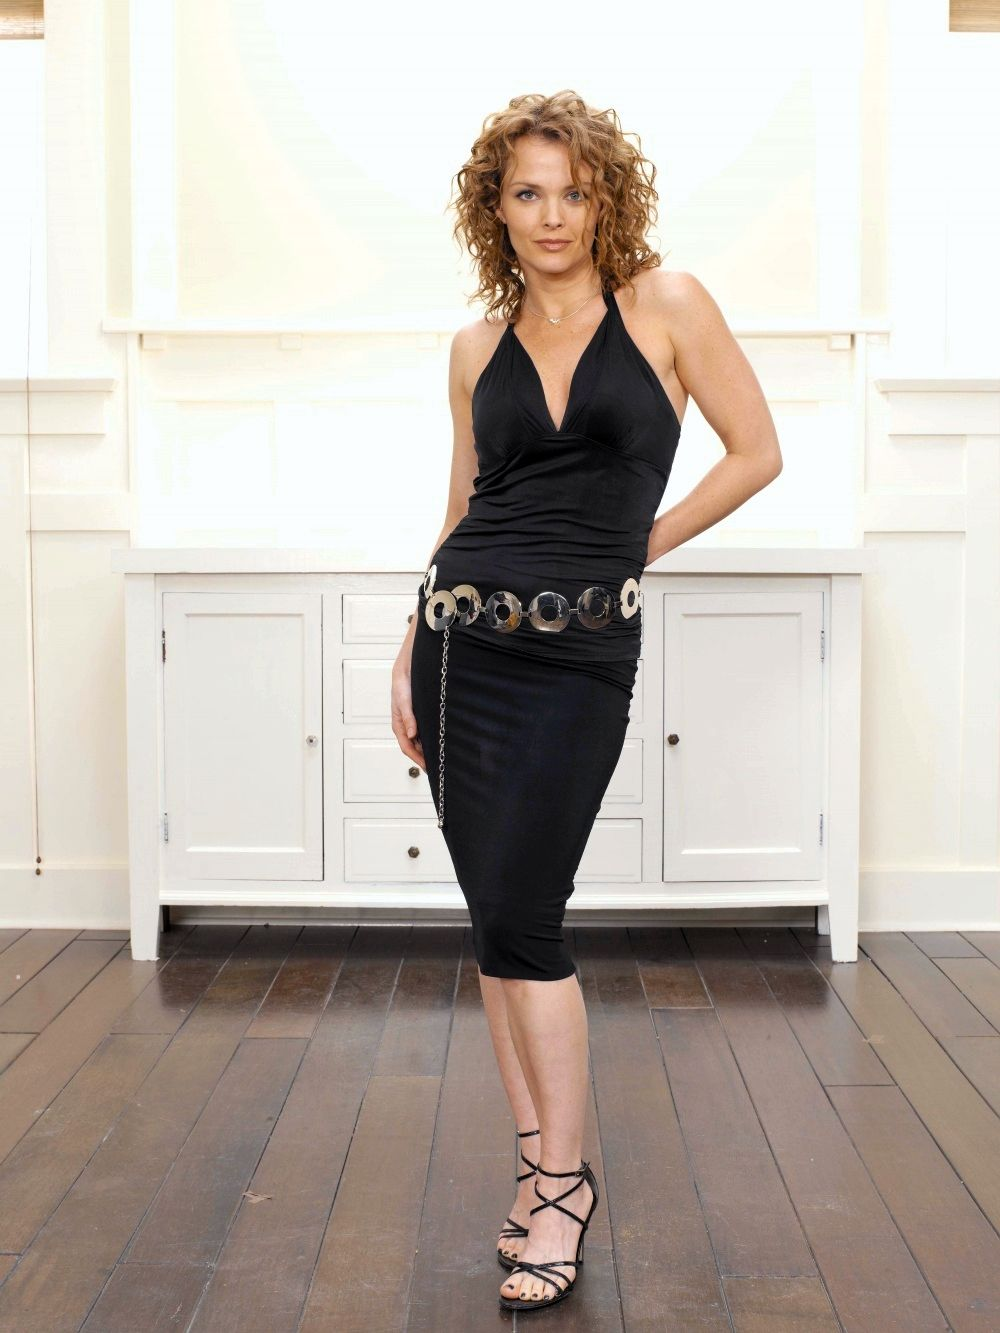 Dina meyer hot images xx, bitches that fuck pics